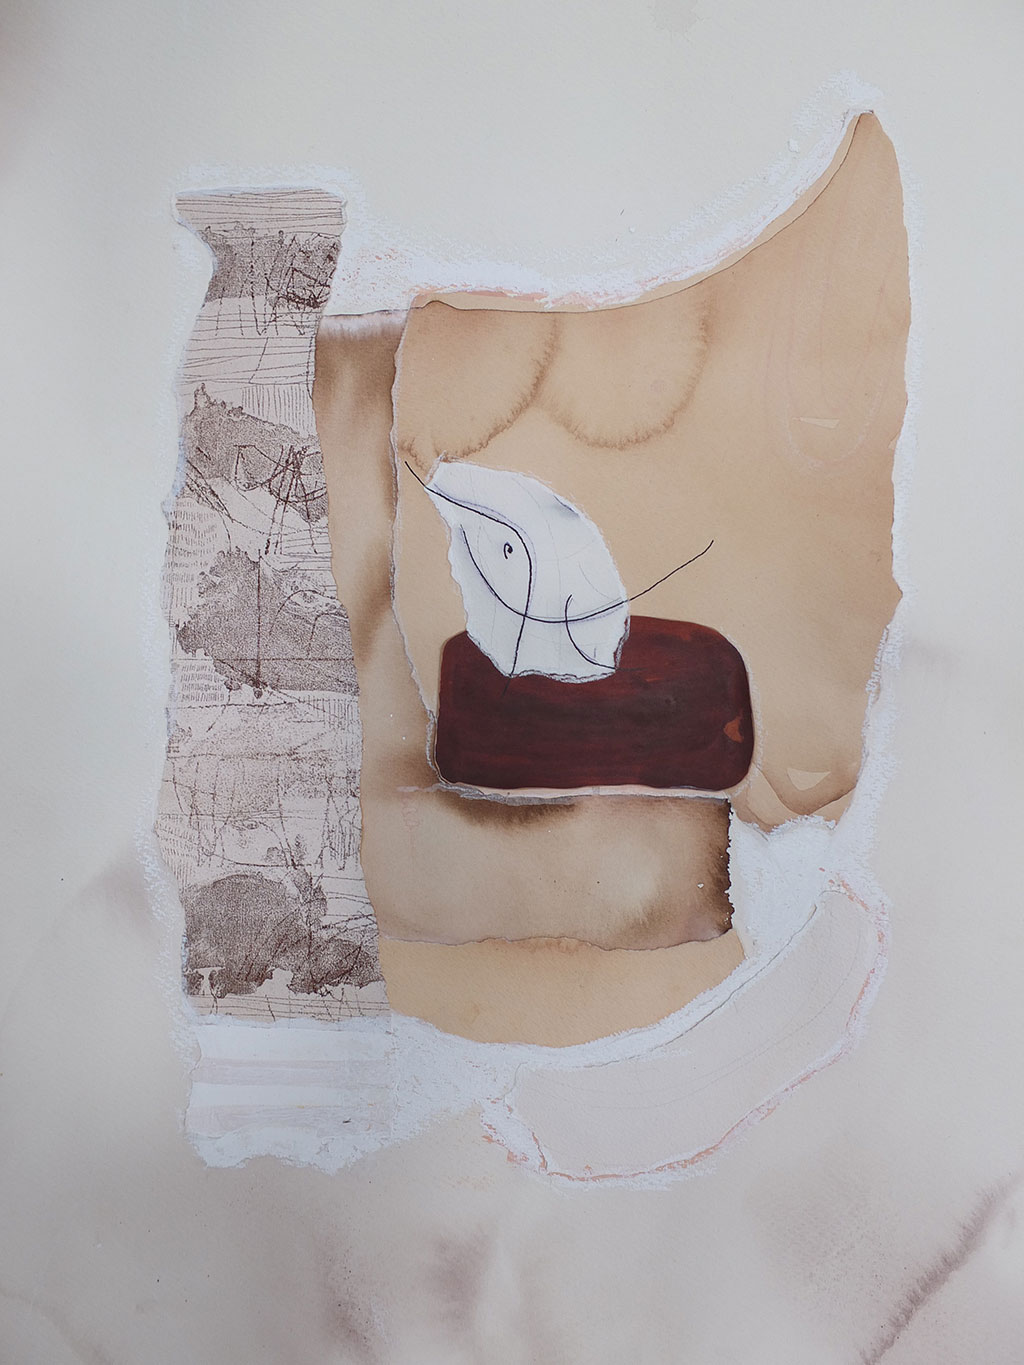 No-more,-all-gone-(dried-up),-2017,-collage-(water-colour,-gouache,-pen,-pencil,-crayon,-oil-stick-and-etching)-on-paper.--56cm-x-76cm-(unframed)